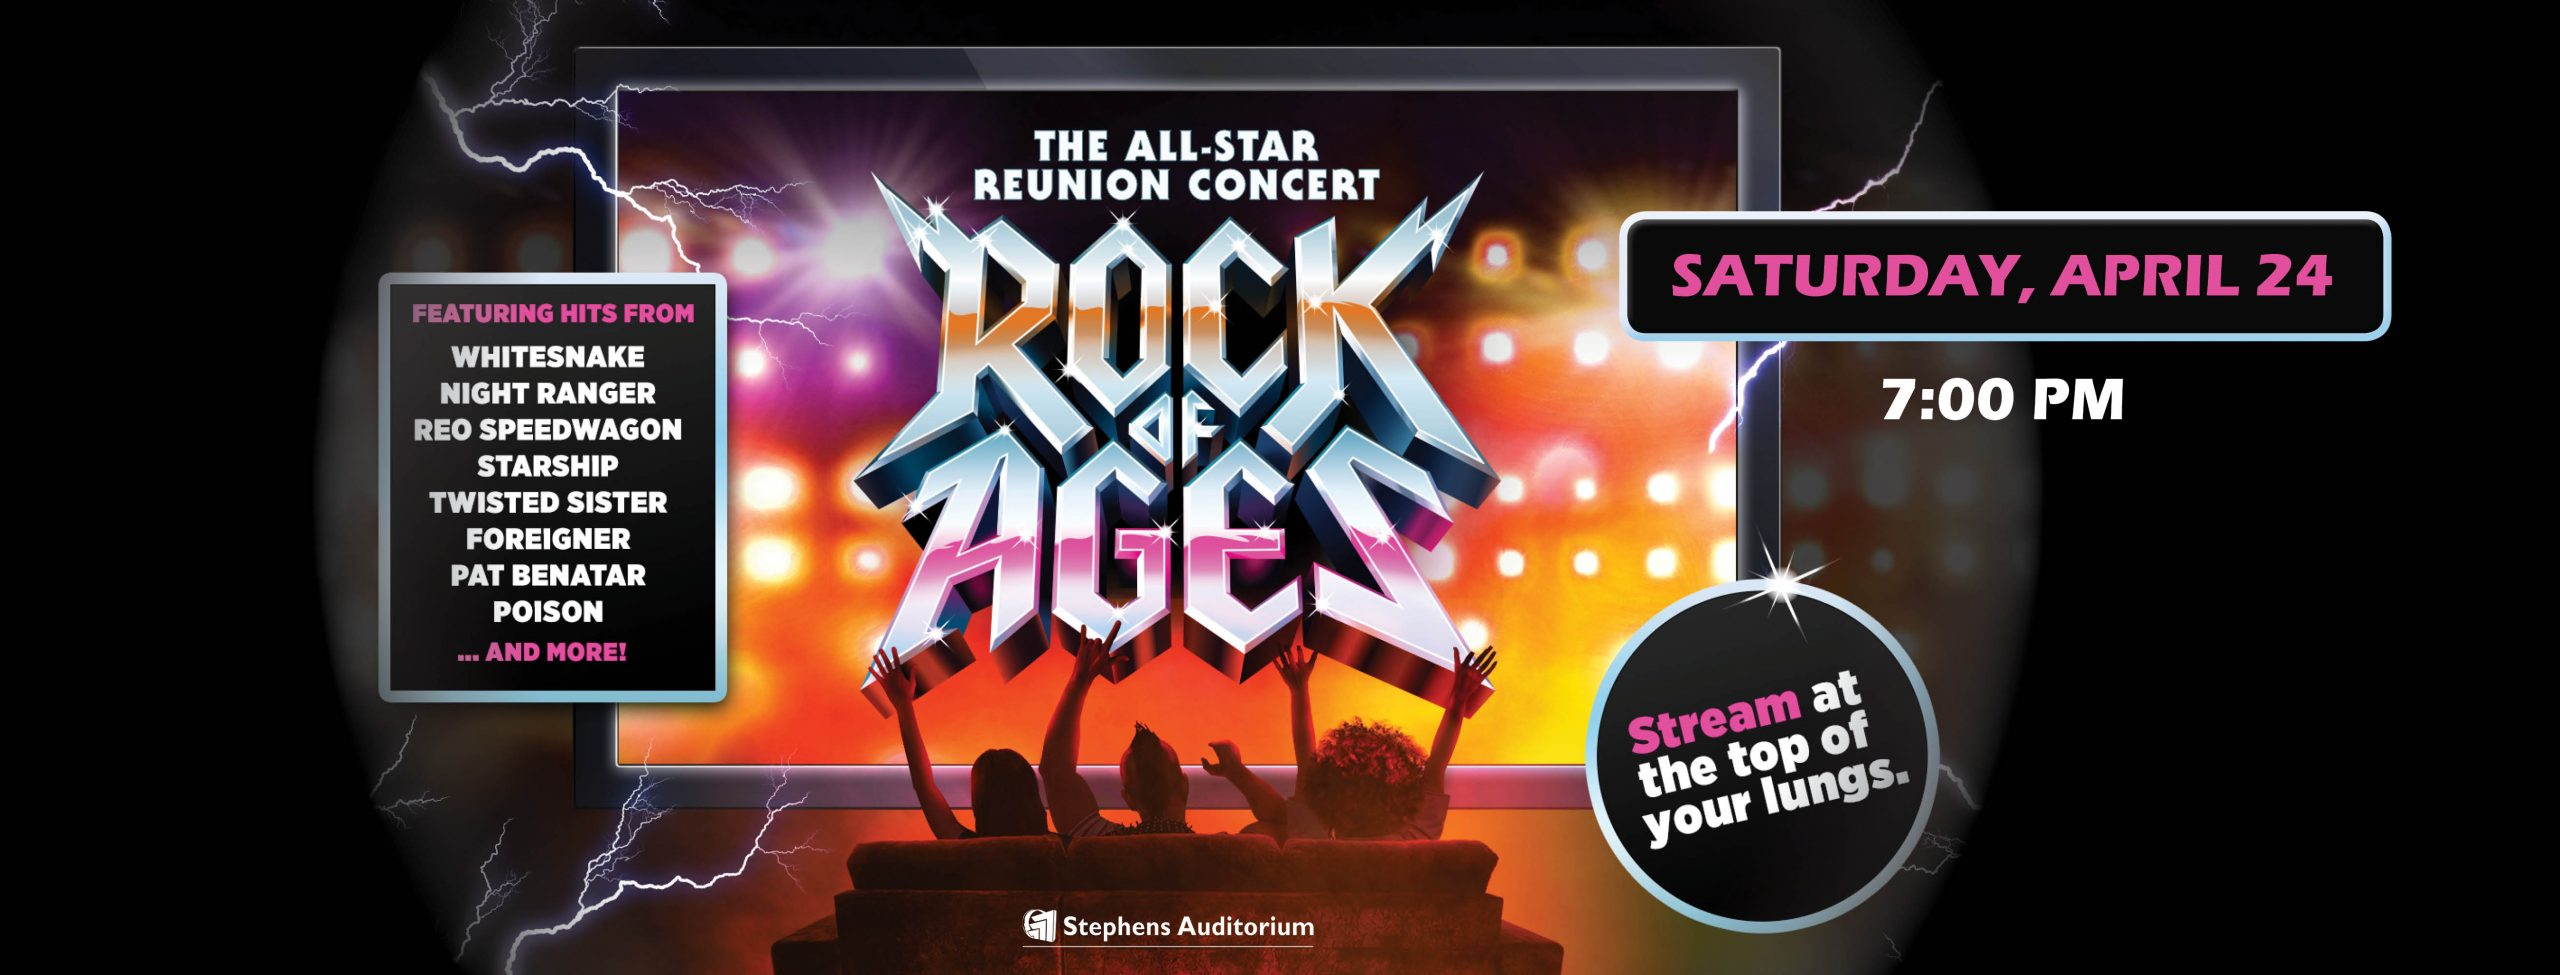 Rock of Ages: All-Star Reunion Concert